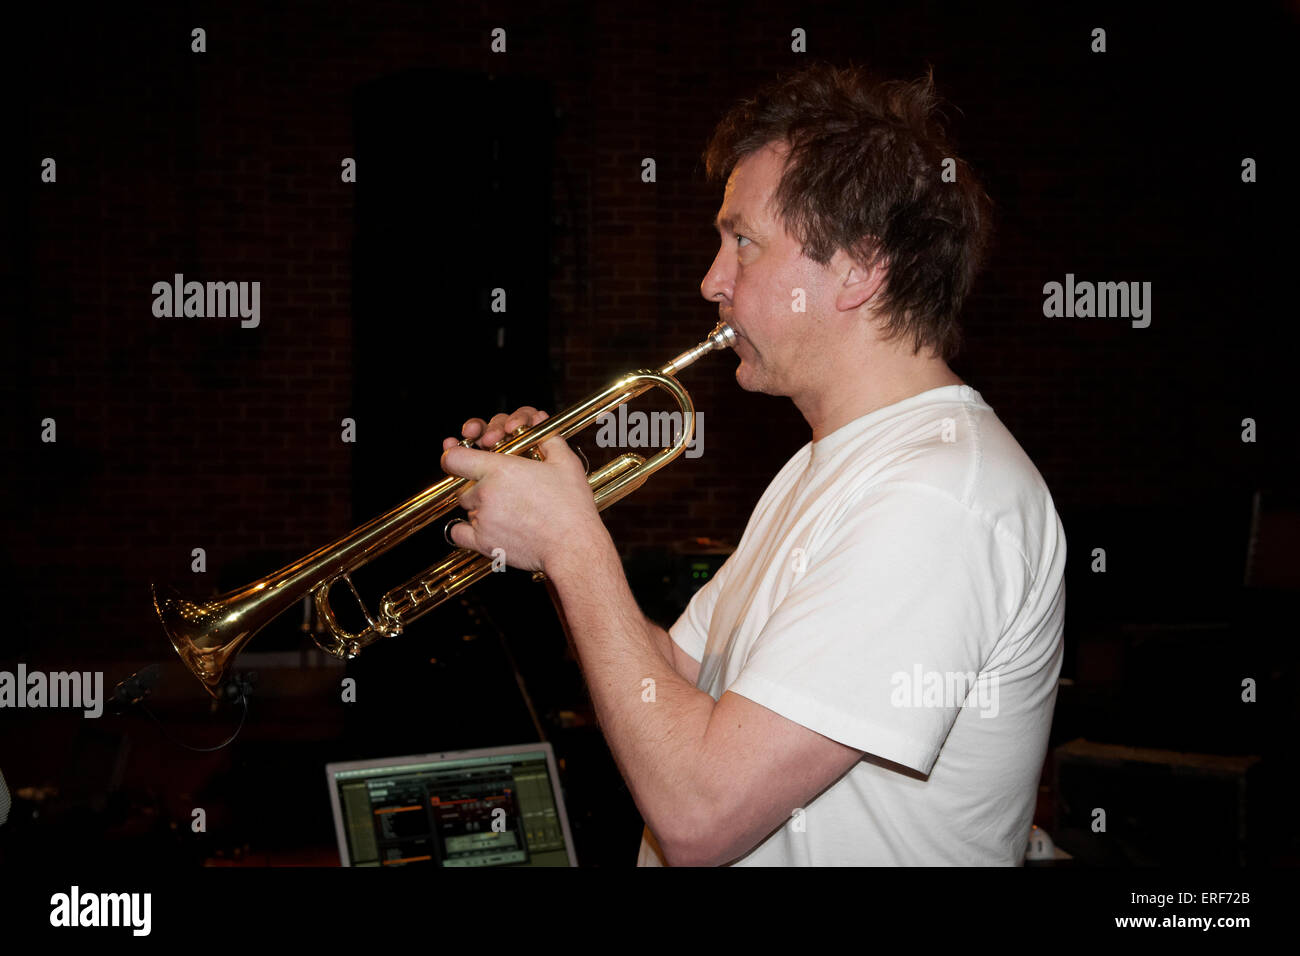 Nils Petter Molvaer playing trumpet during his soundchecks at the Turner Sims Concert Hall in Southampton, Hampshire, - Stock Image